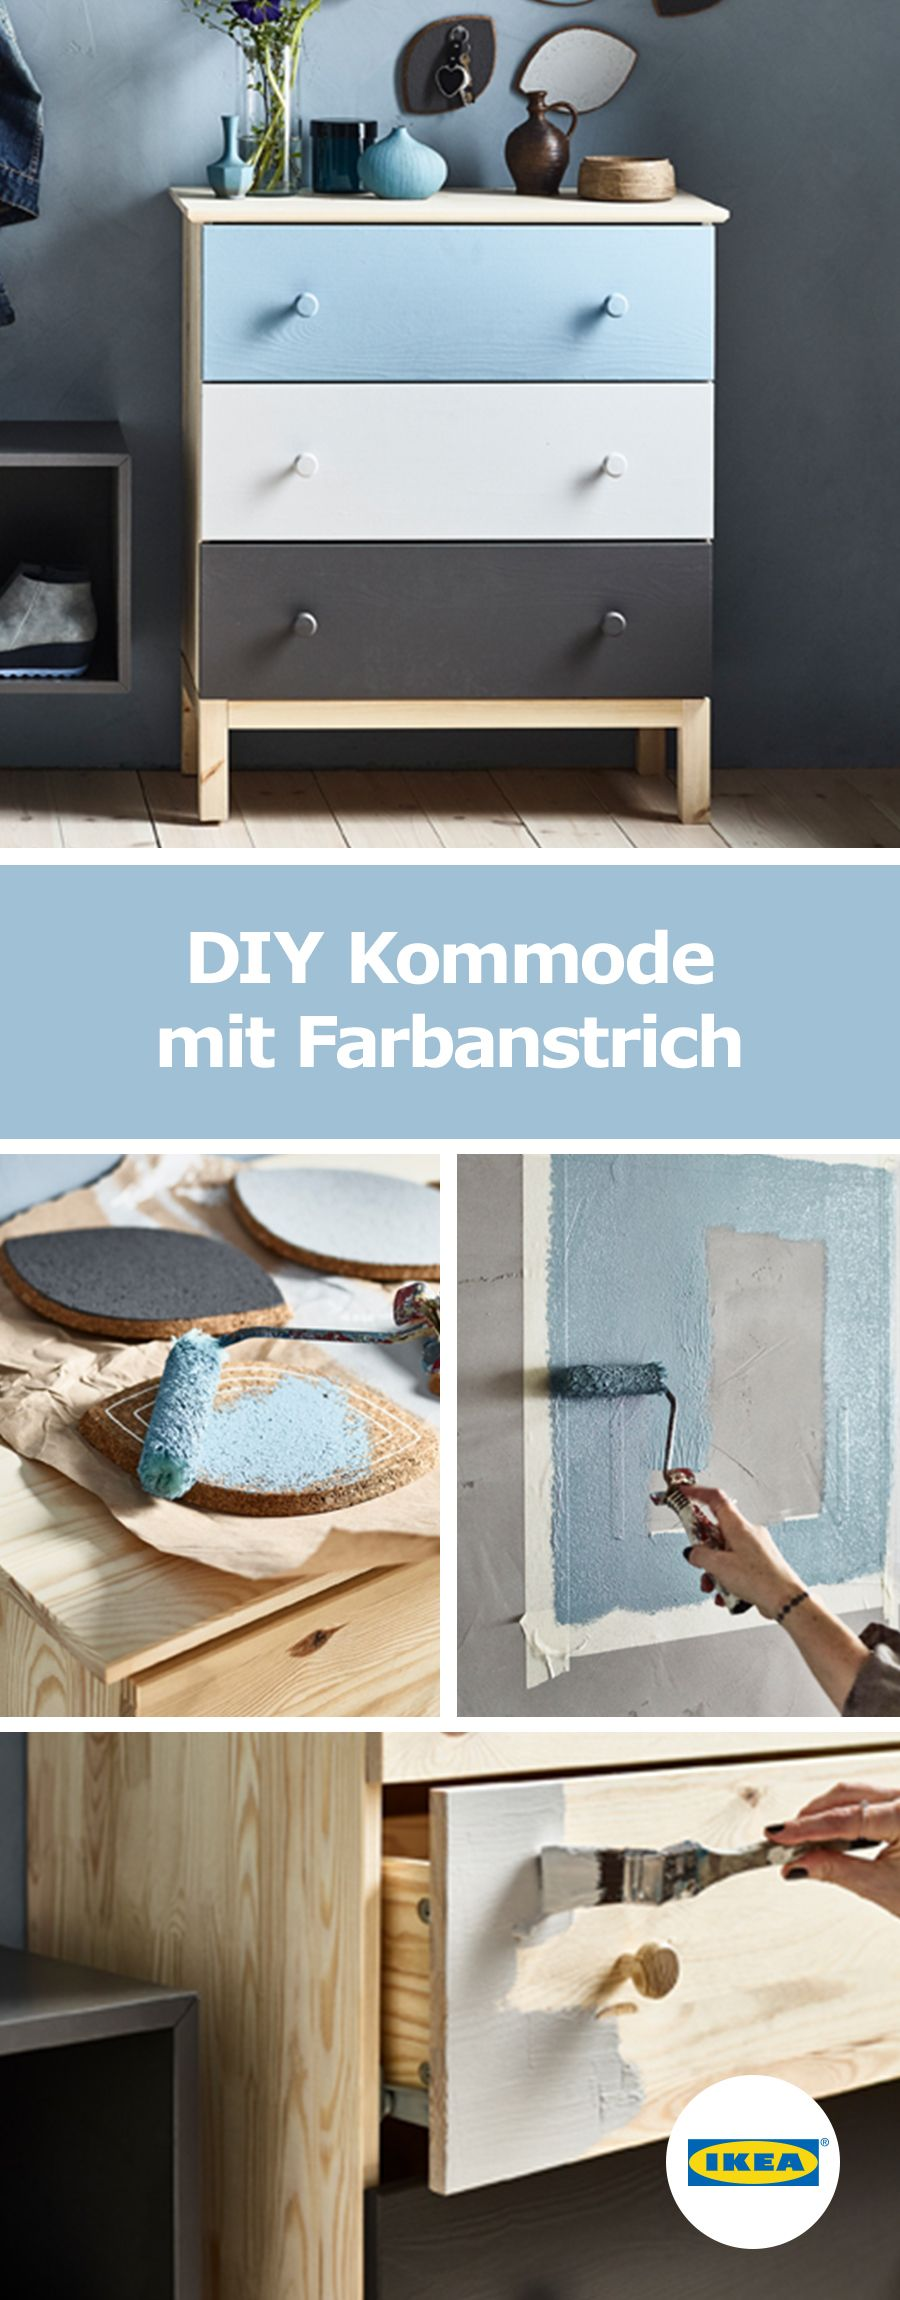 ikea deutschland diy kommode mit farbanstrich pinterest. Black Bedroom Furniture Sets. Home Design Ideas